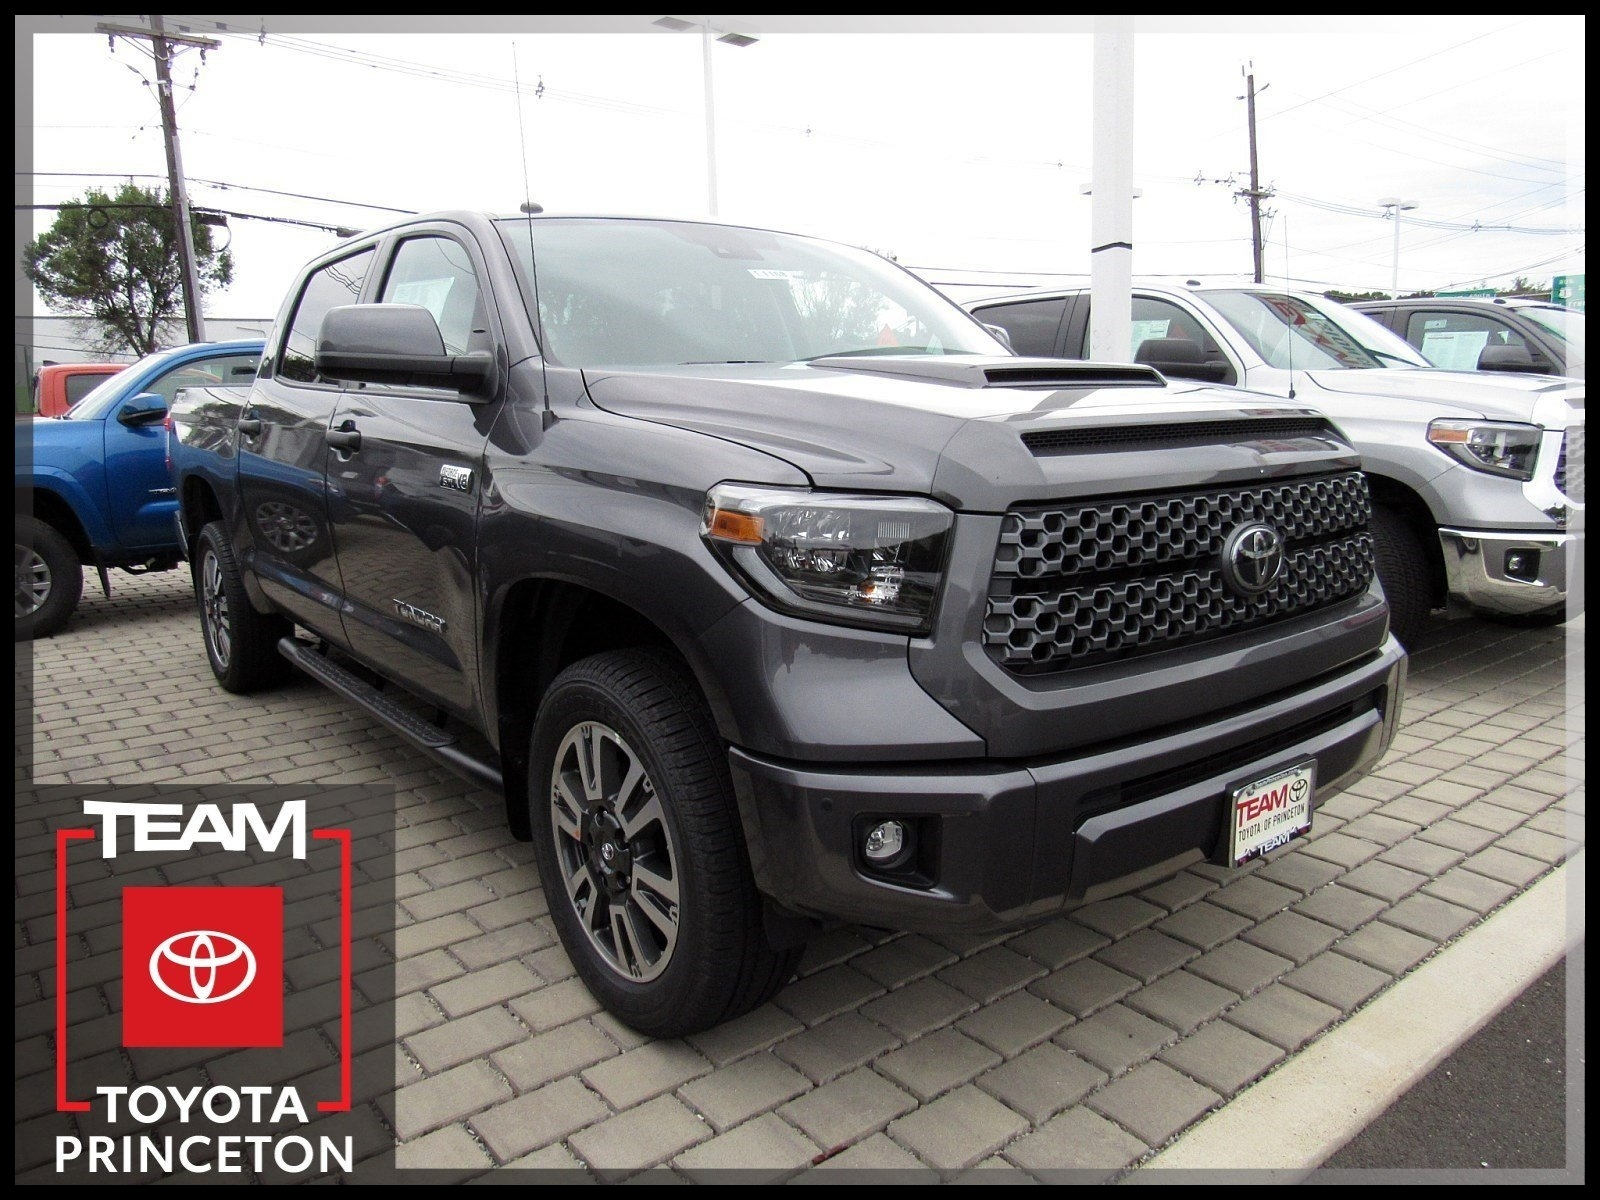 New 2019 Toyota Tundra SR5 in Lawrenceville NJ Team Toyota of Princeton